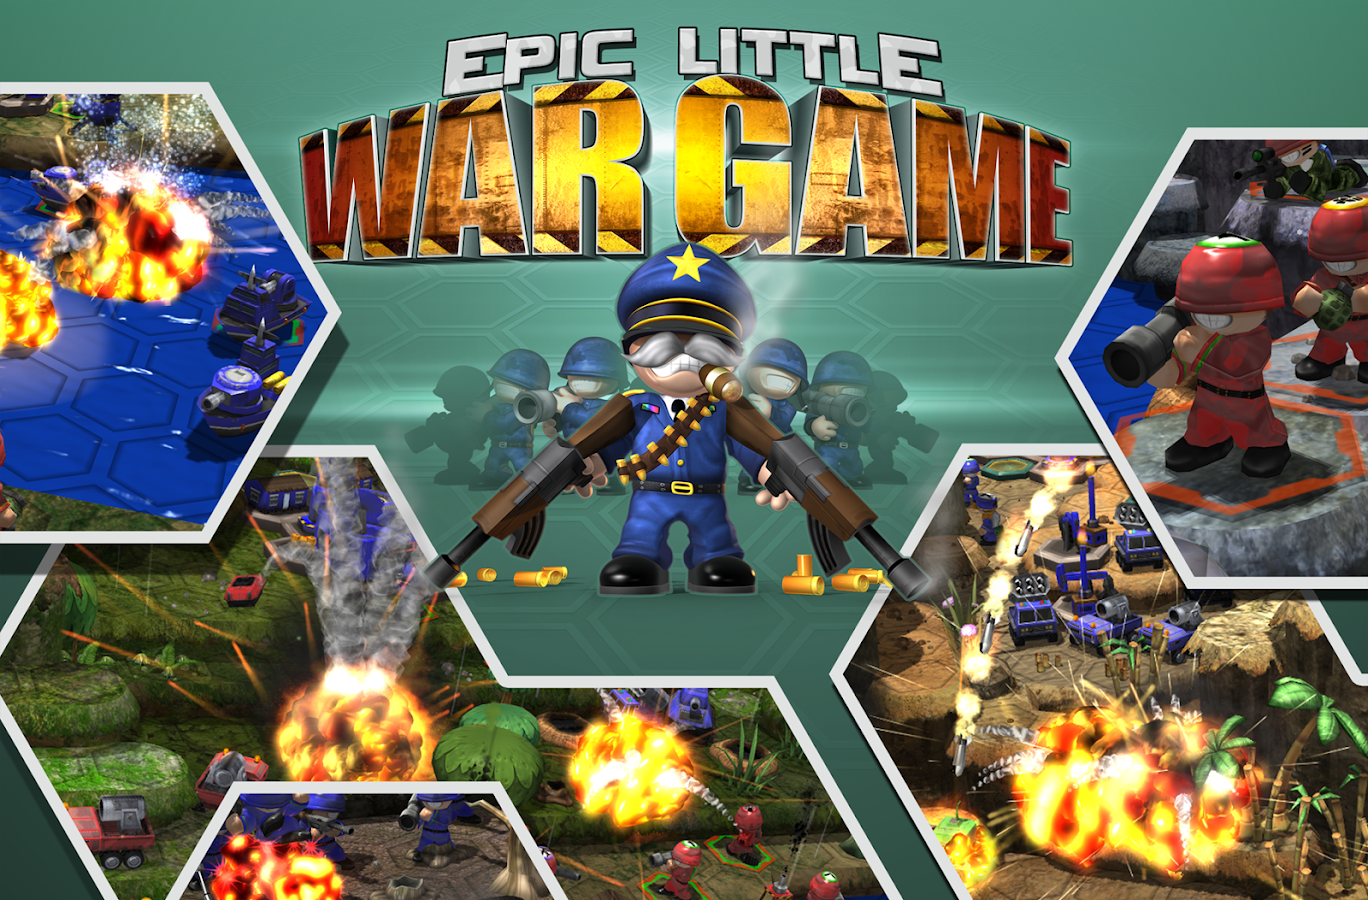 Epic Little War Game Screenshot 5